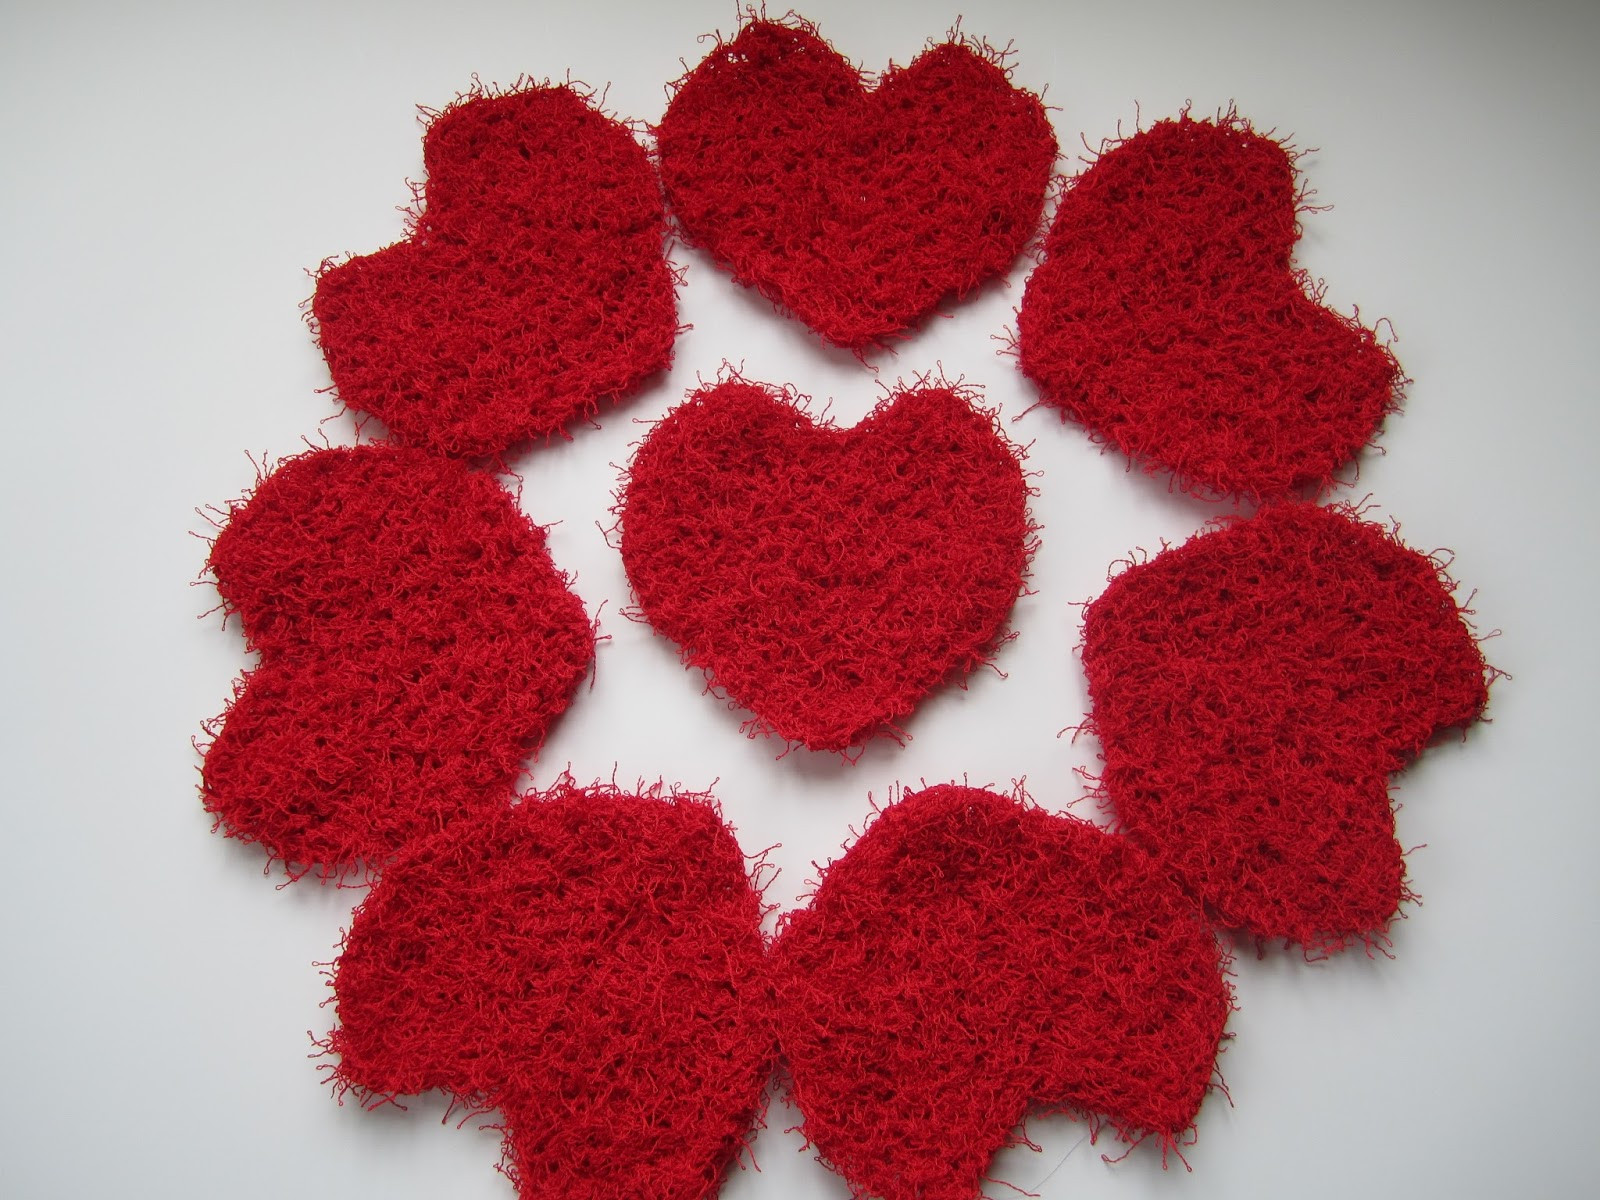 Red Heart Scrubby Yarn Beautiful Down Cloverlaine Quickie Hearts Of Great 40 Pics Red Heart Scrubby Yarn